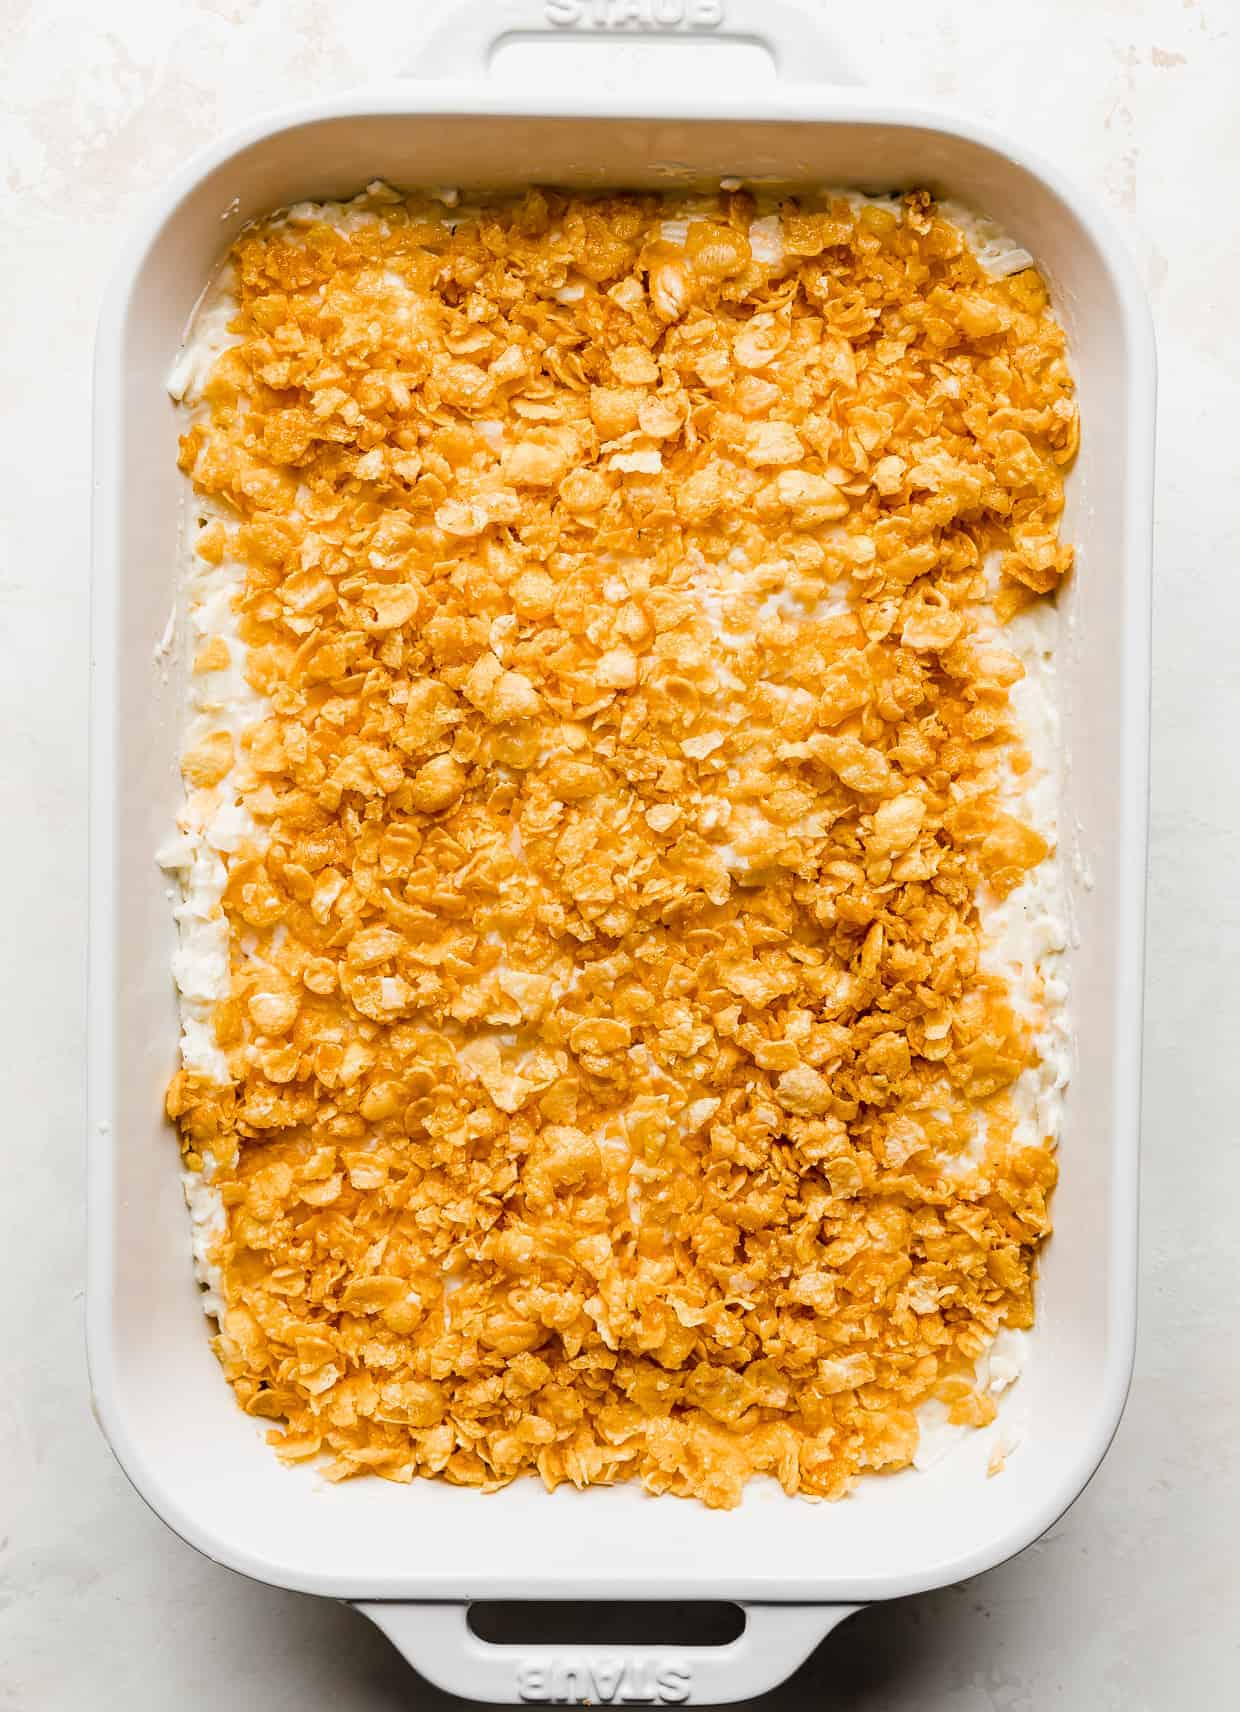 A casserole dish full of unbaked funeral potatoes topped with crushed cornflakes, against a white background.